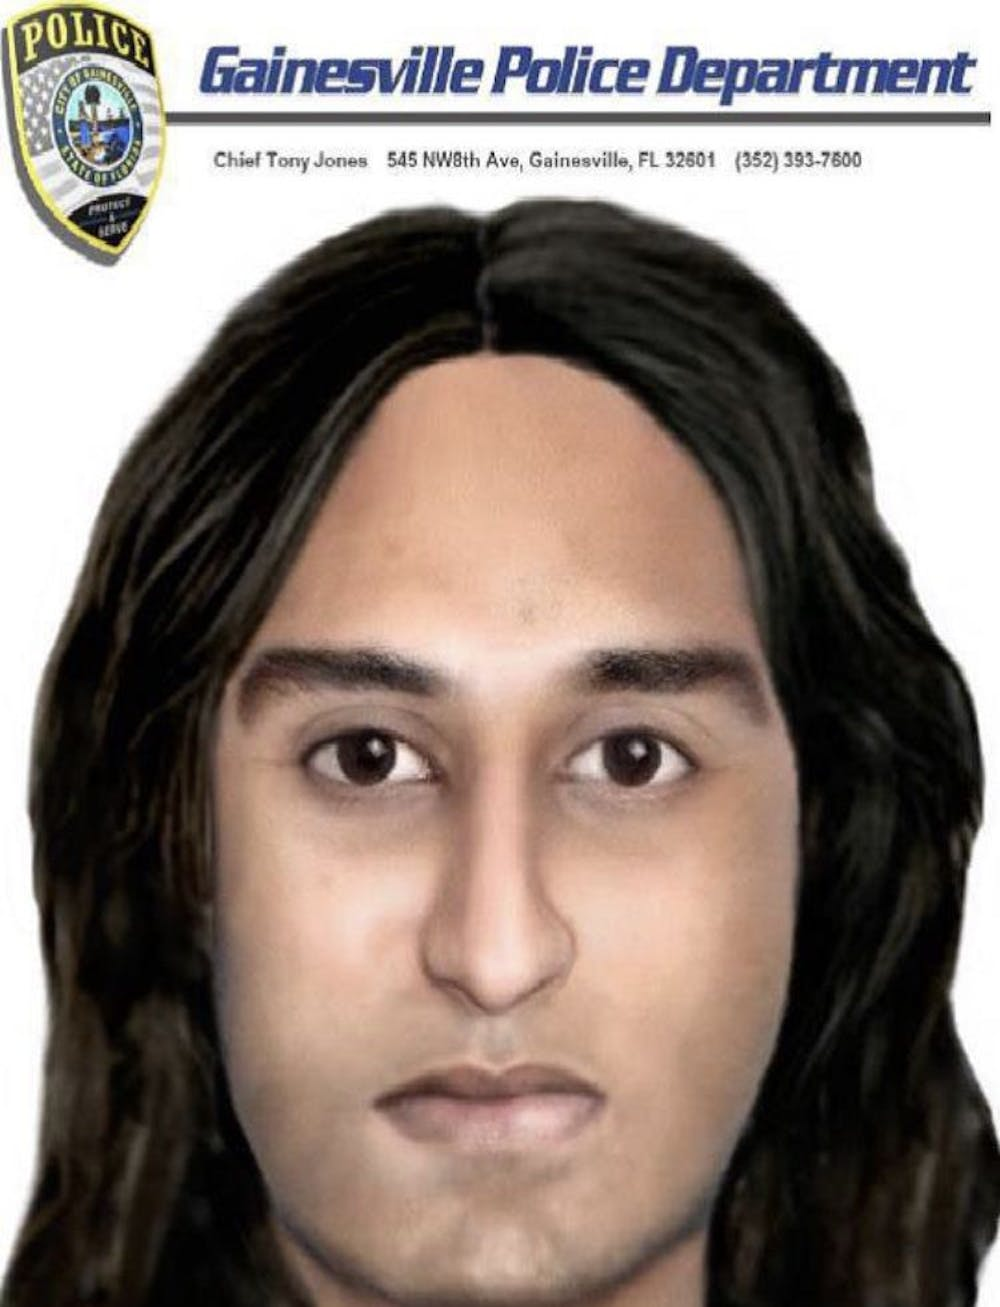 <p>A police drawing of the suspect.</p>